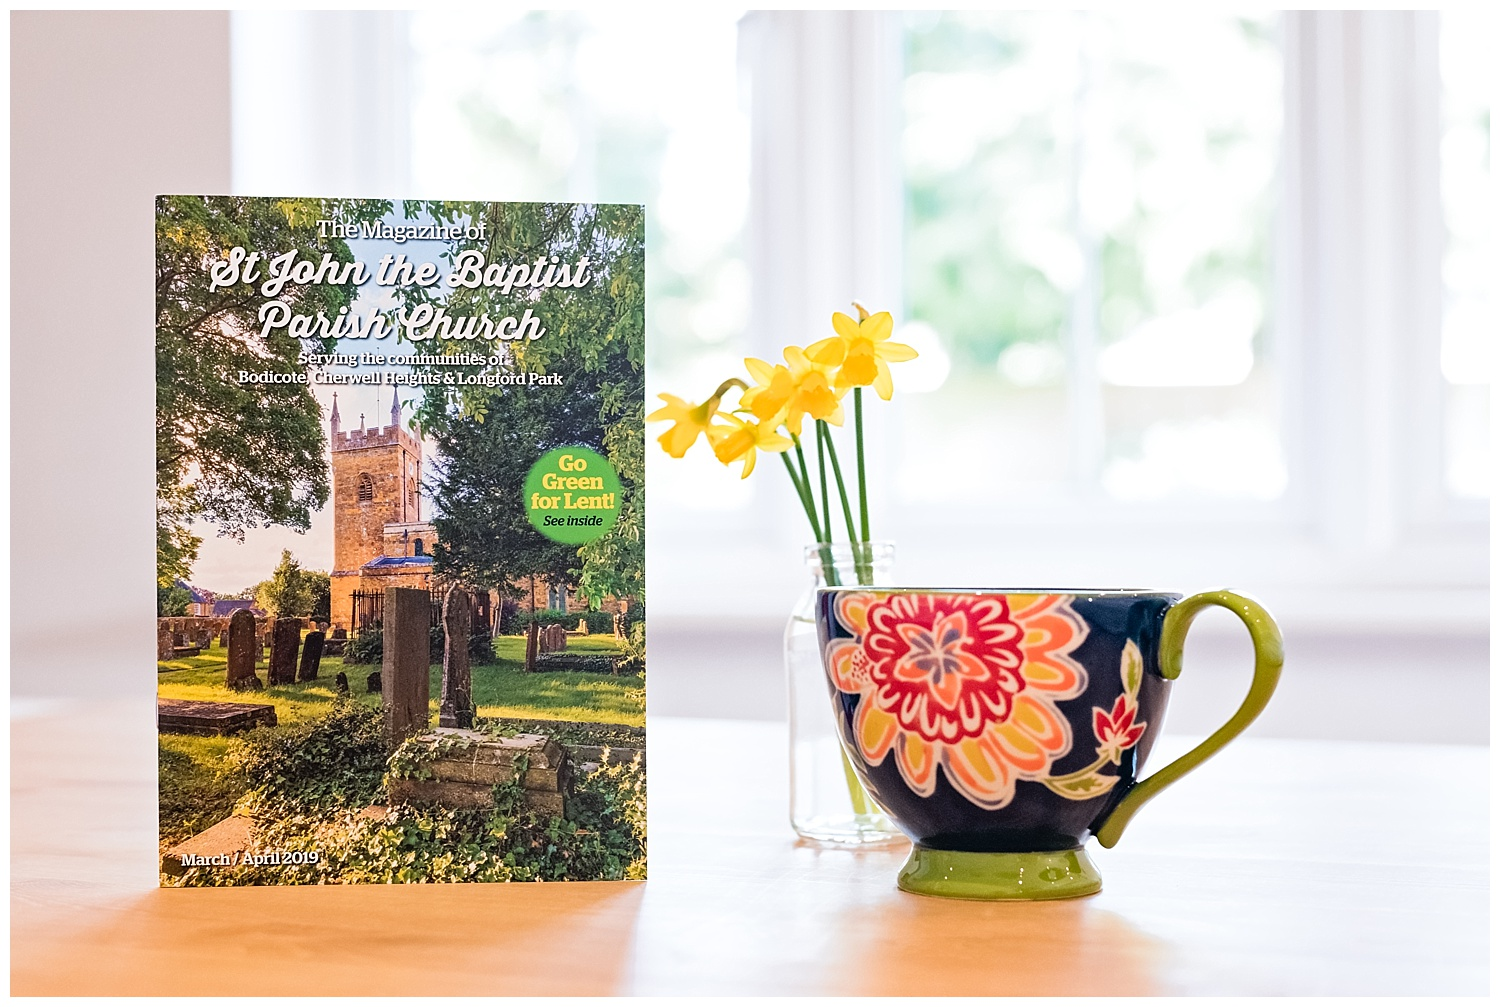 St John the Baptist Parish Church magazine stood next a cup of te and daffodils